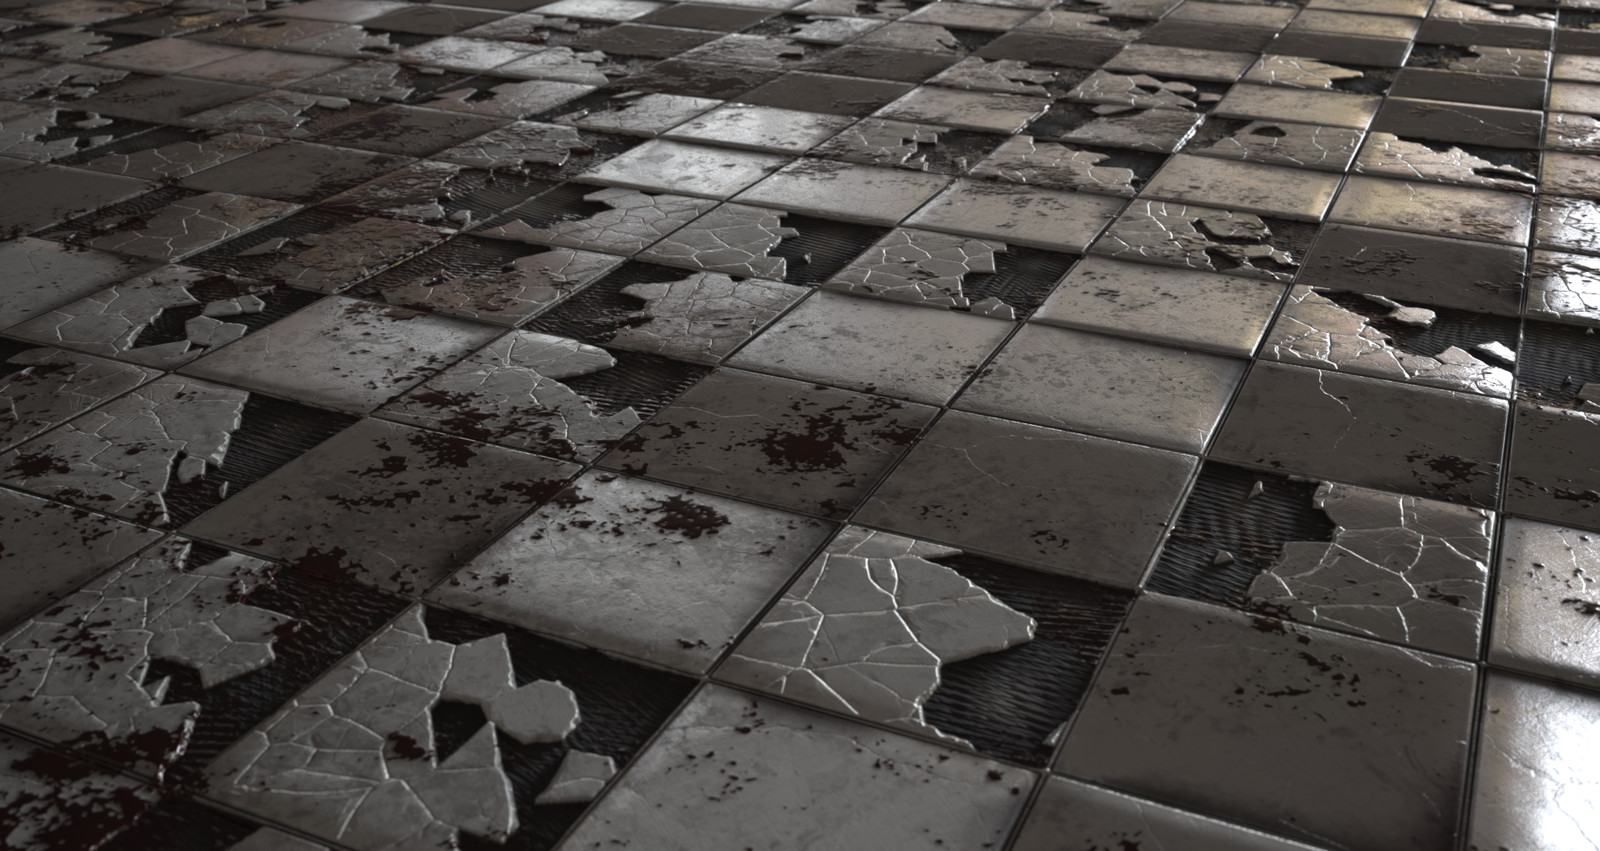 Cracked tile floor. Each floor has parameters for blood splatter and pooling, as well as options to colour the blood and add self illumination (looking at you Germany ;) ).